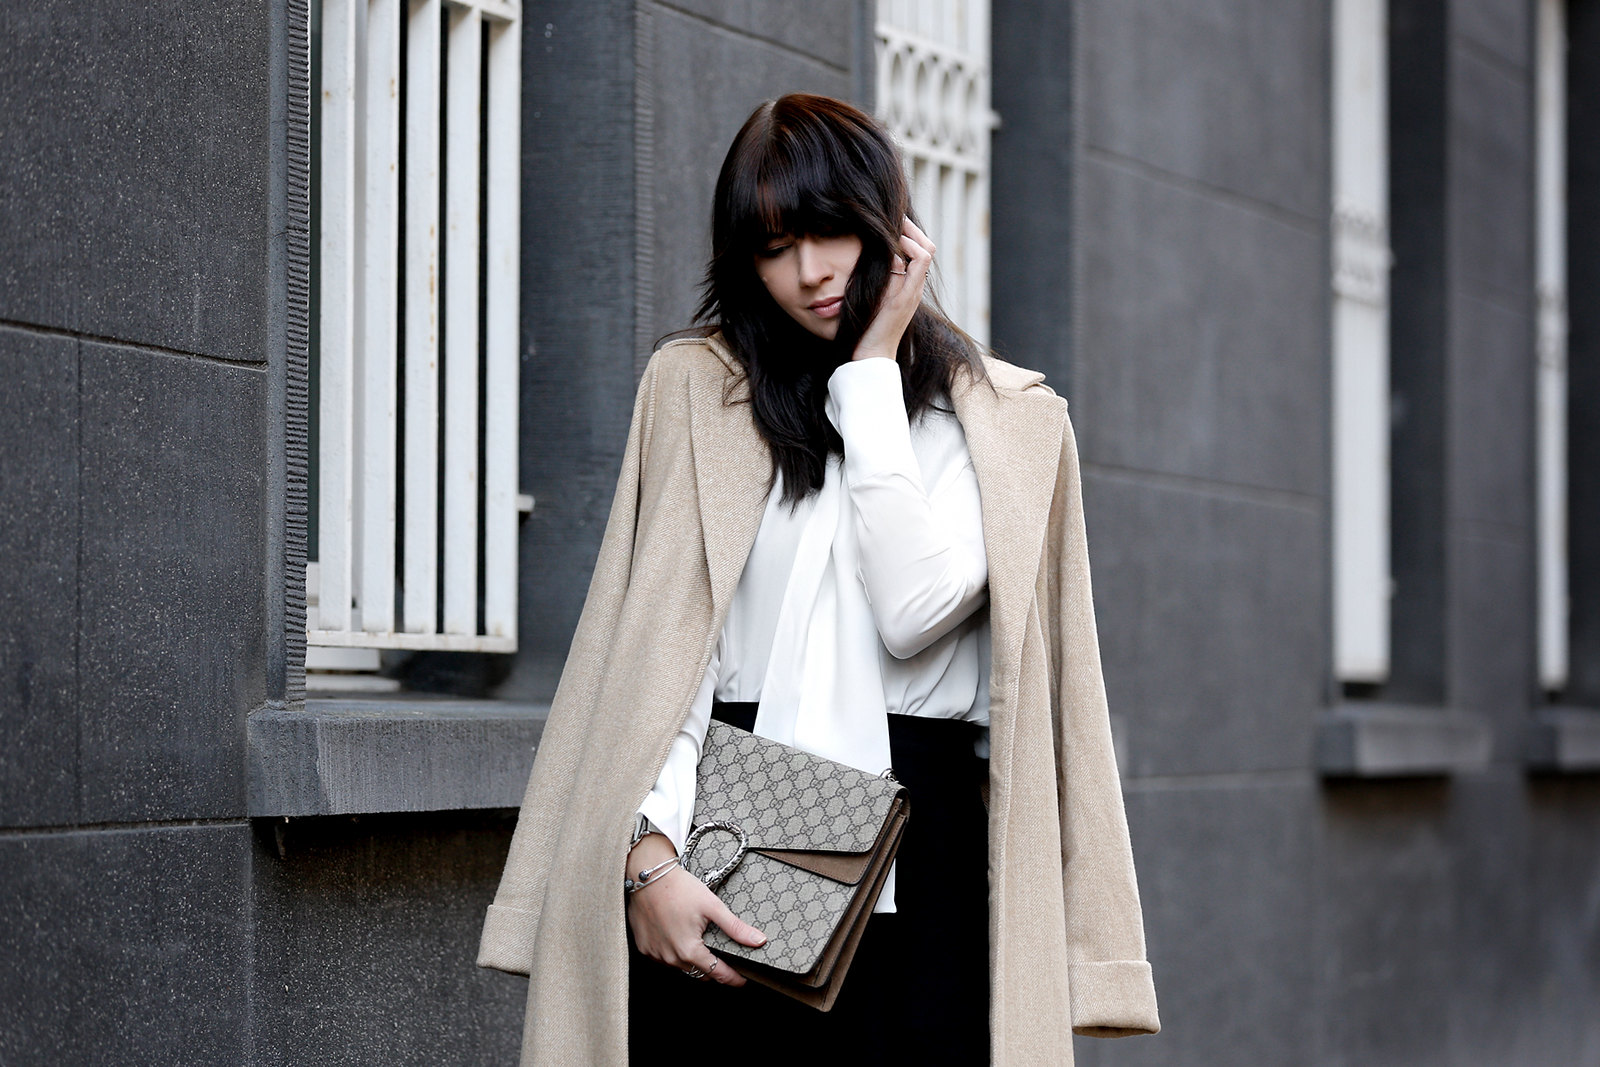 ootd outfit what i wore styling look lookbook mint&berry mint & berry long camel coat wool winter suede gucci dionysus luxury handbag black and white minimal dark styling nordic fashionblogger cats & dogs modeblog ricarda schernus styleblogger berlin 1